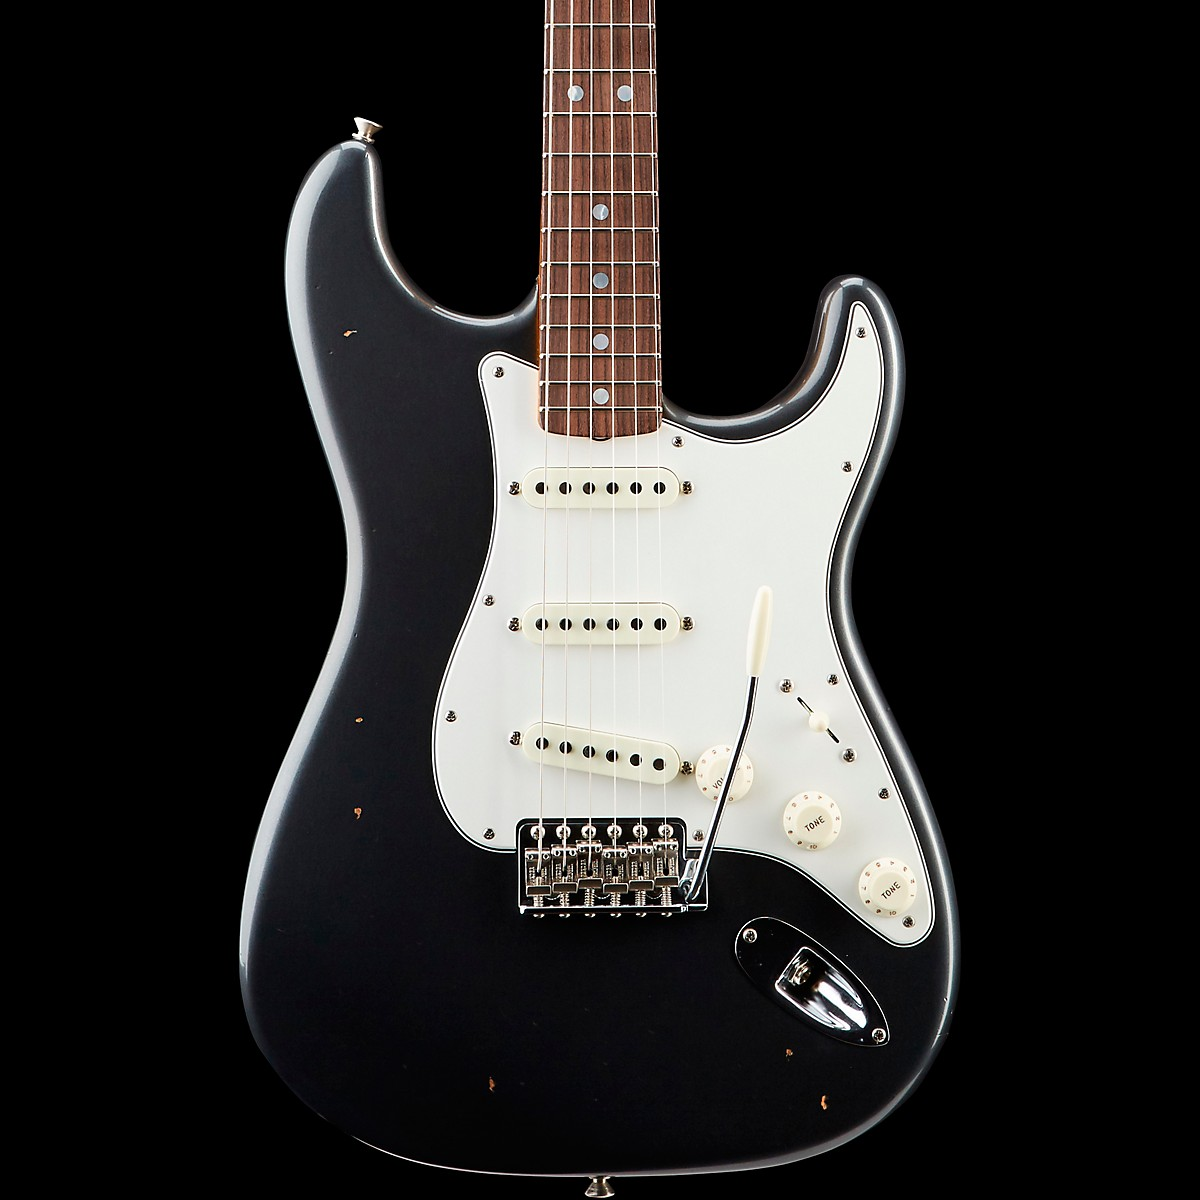 Fender Custom Shop '65 Journeyman Stratocaster Closet Classic Rosewood Fingerboard Electric Guitar